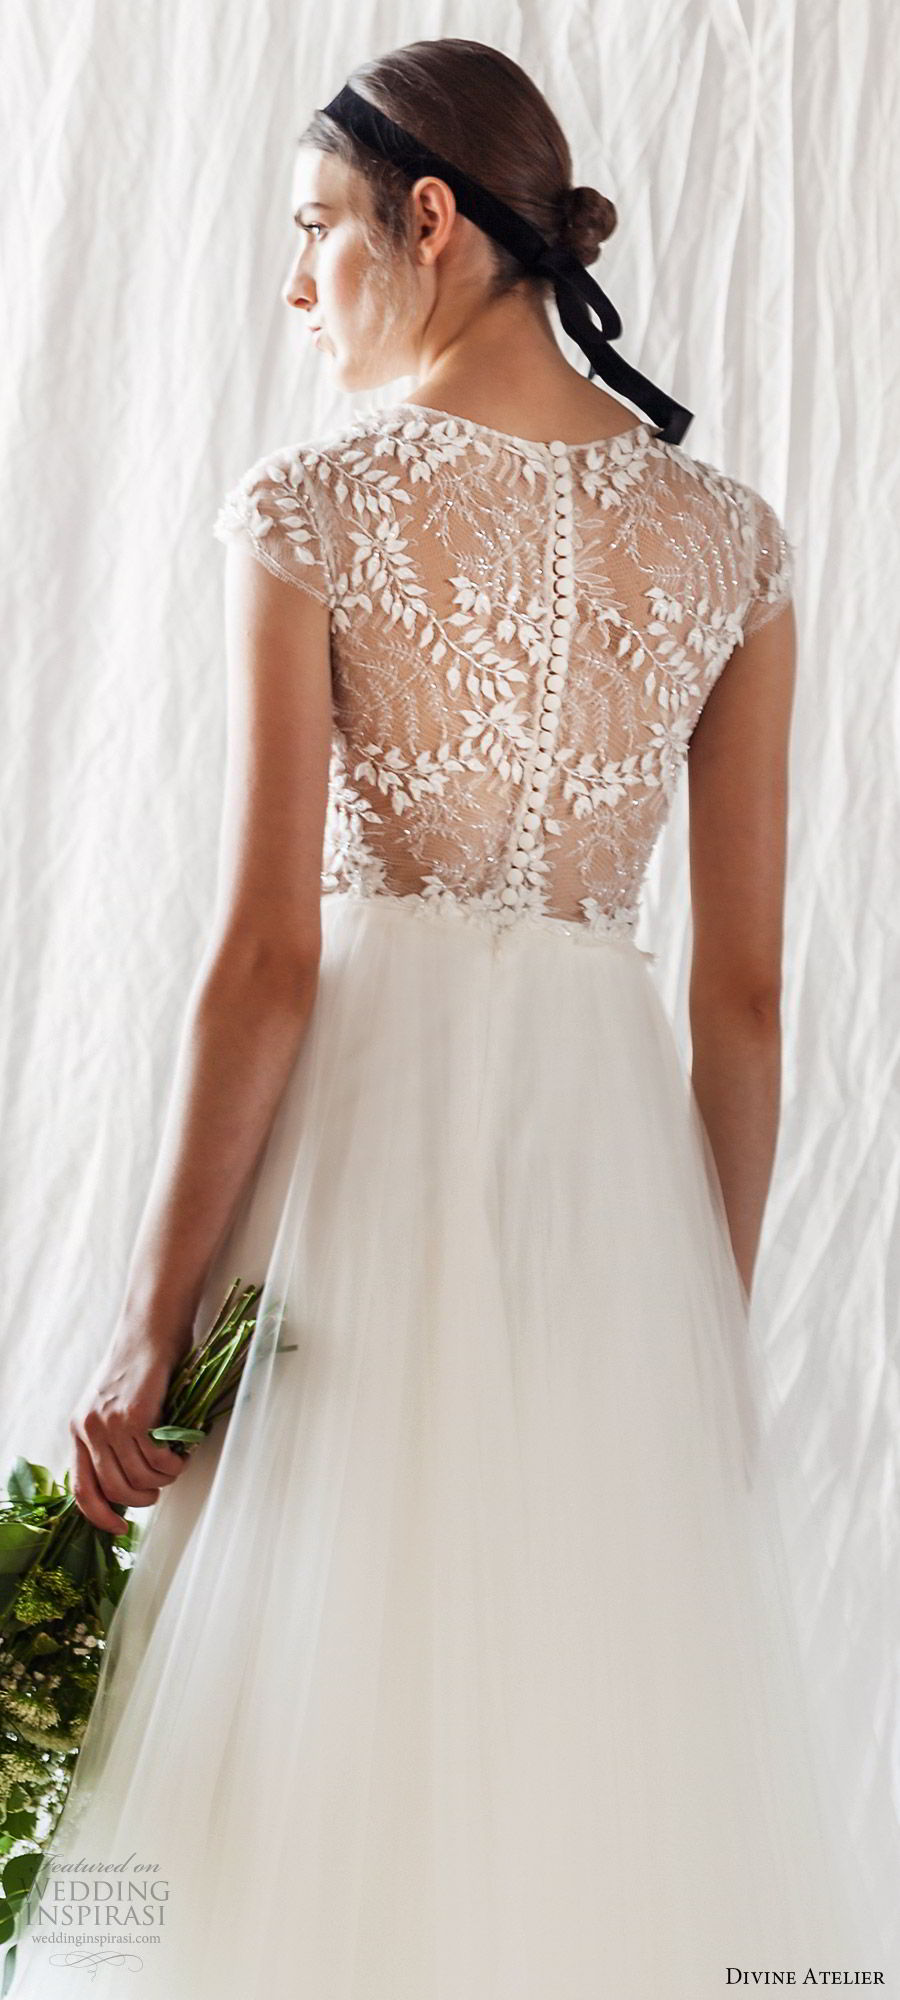 divine atelier 2019 bridal sheer cap sleeves illusion jewel neck embellished corset bodice soft a line wedding dress (8) sheer back sweep train romantic boho chic bv